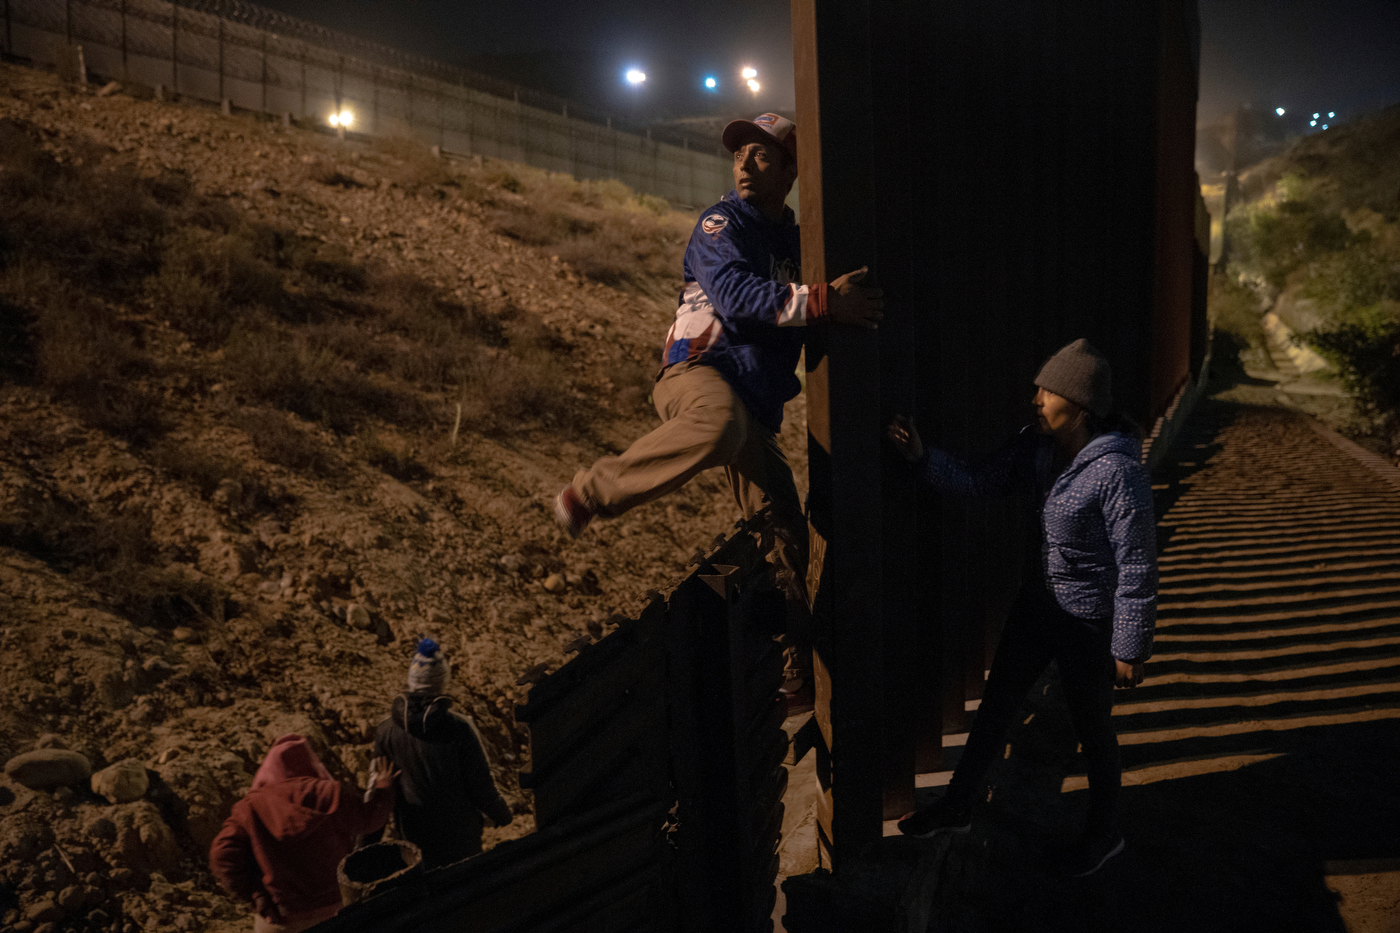 Migrants scope out and try to find a place to cross the U.S. - Mexican border wall near the beach in Tijuana, Mexico on December 16, 2018. Some attempt to dig under the wall, while others pass over it.  Photo by Kitra Cahana / MAPS